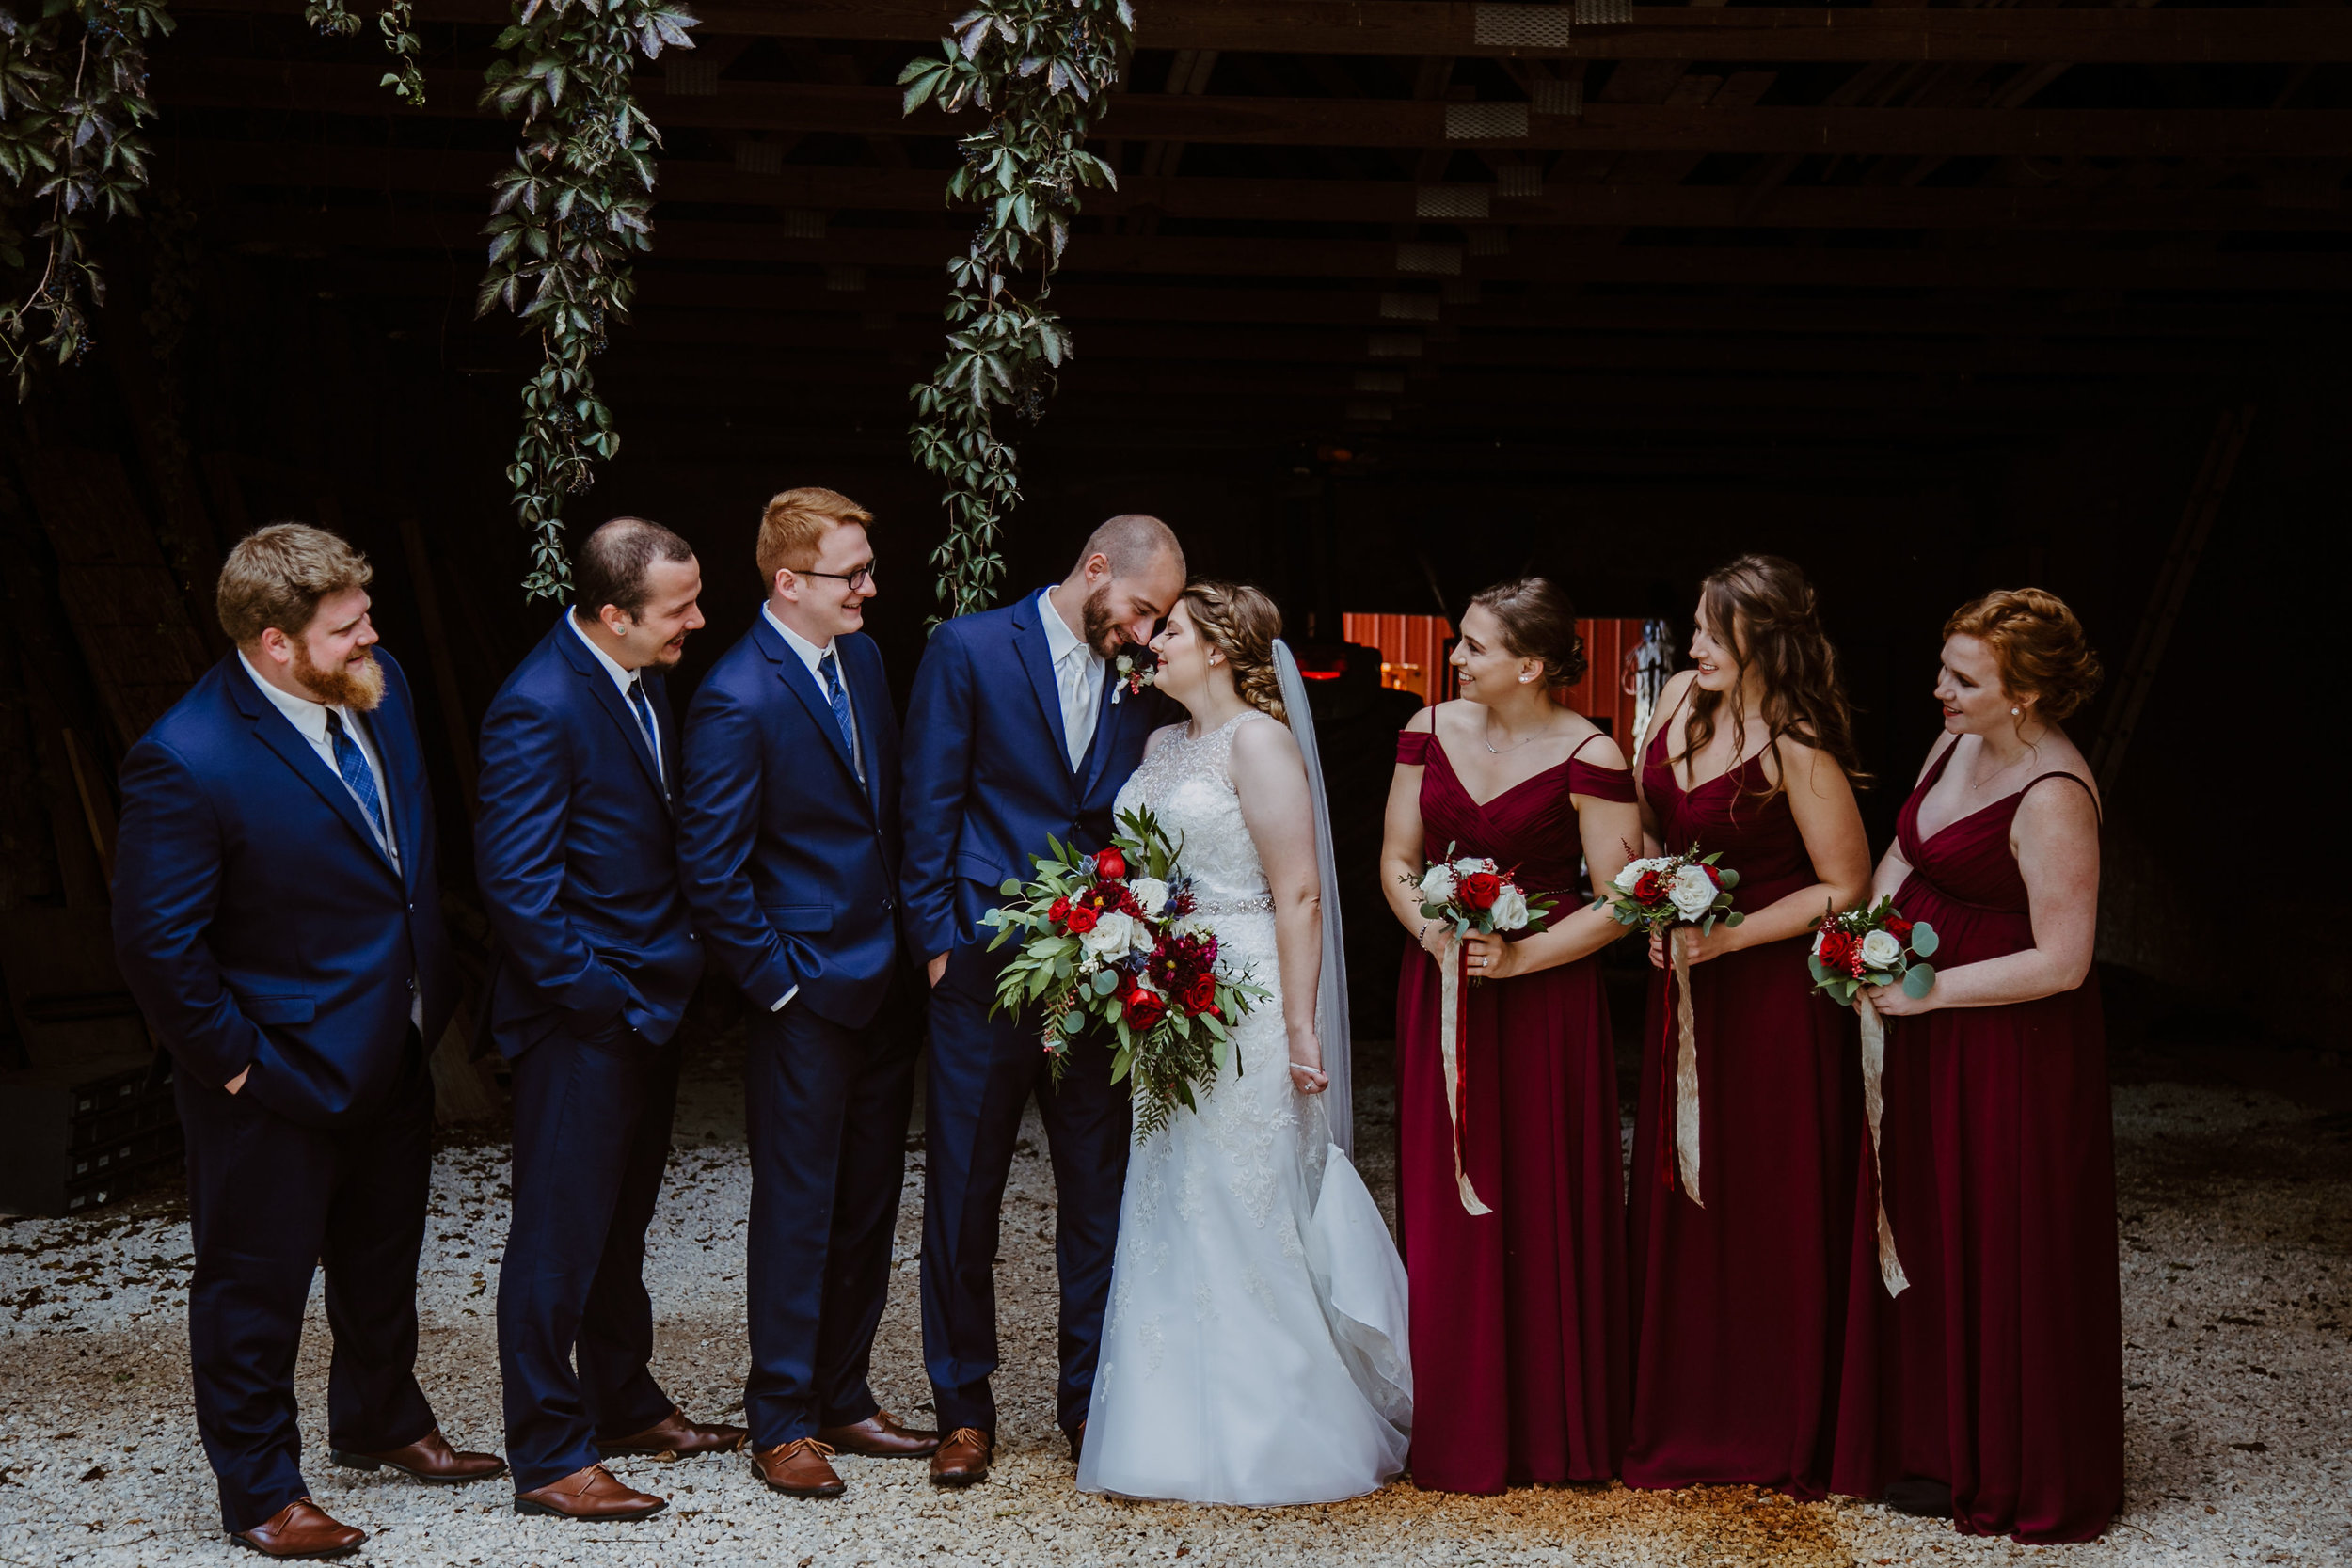 Carleigh Michelle Photography, Haue Valley